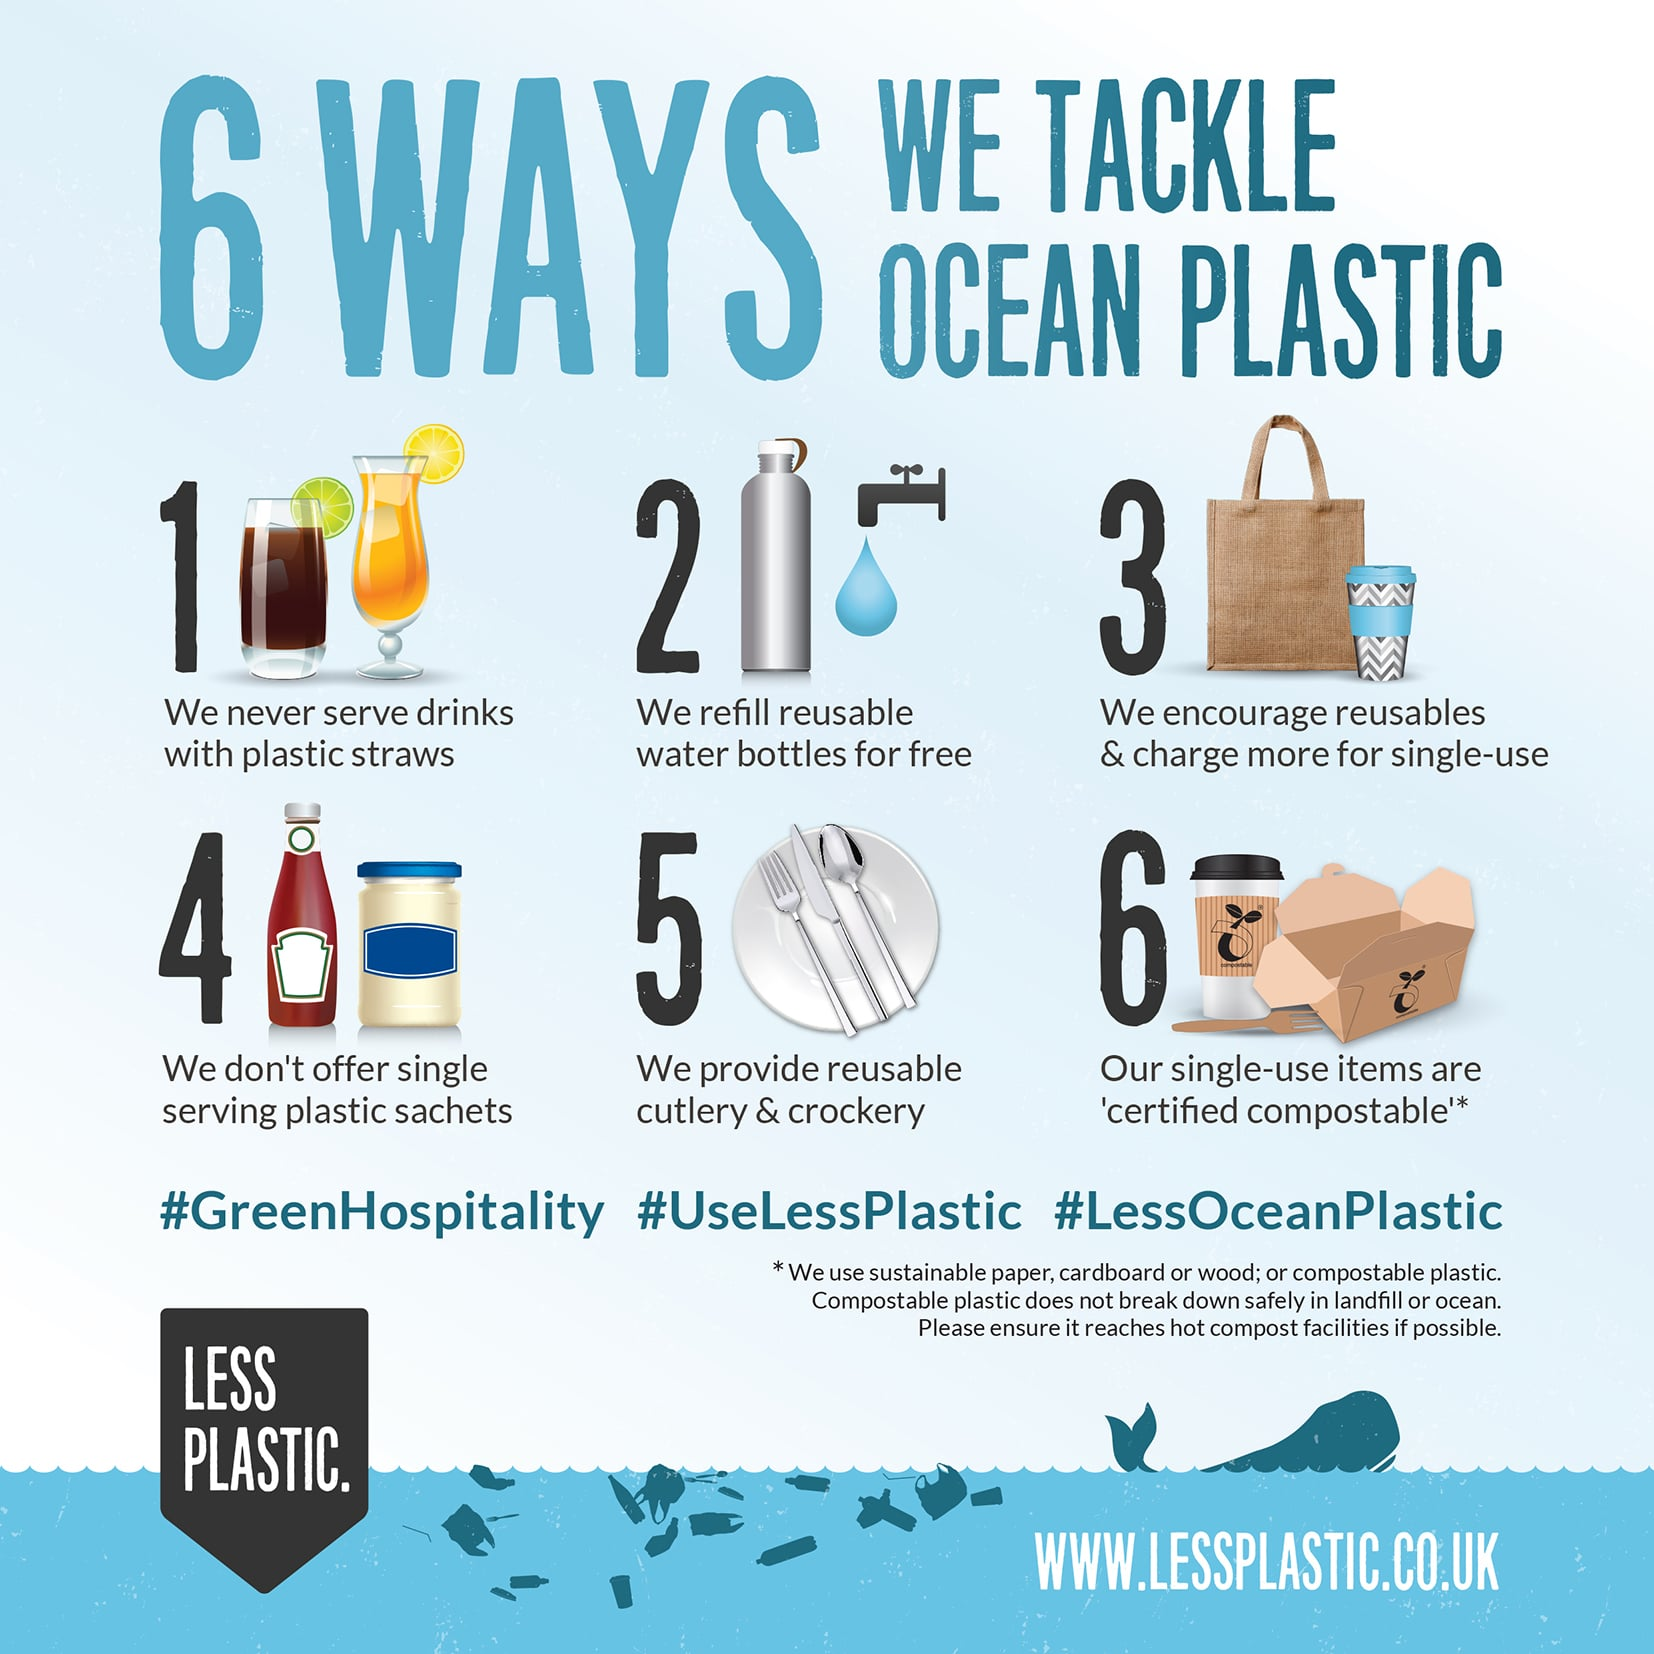 6 ways we tackle ocean plastic infographic